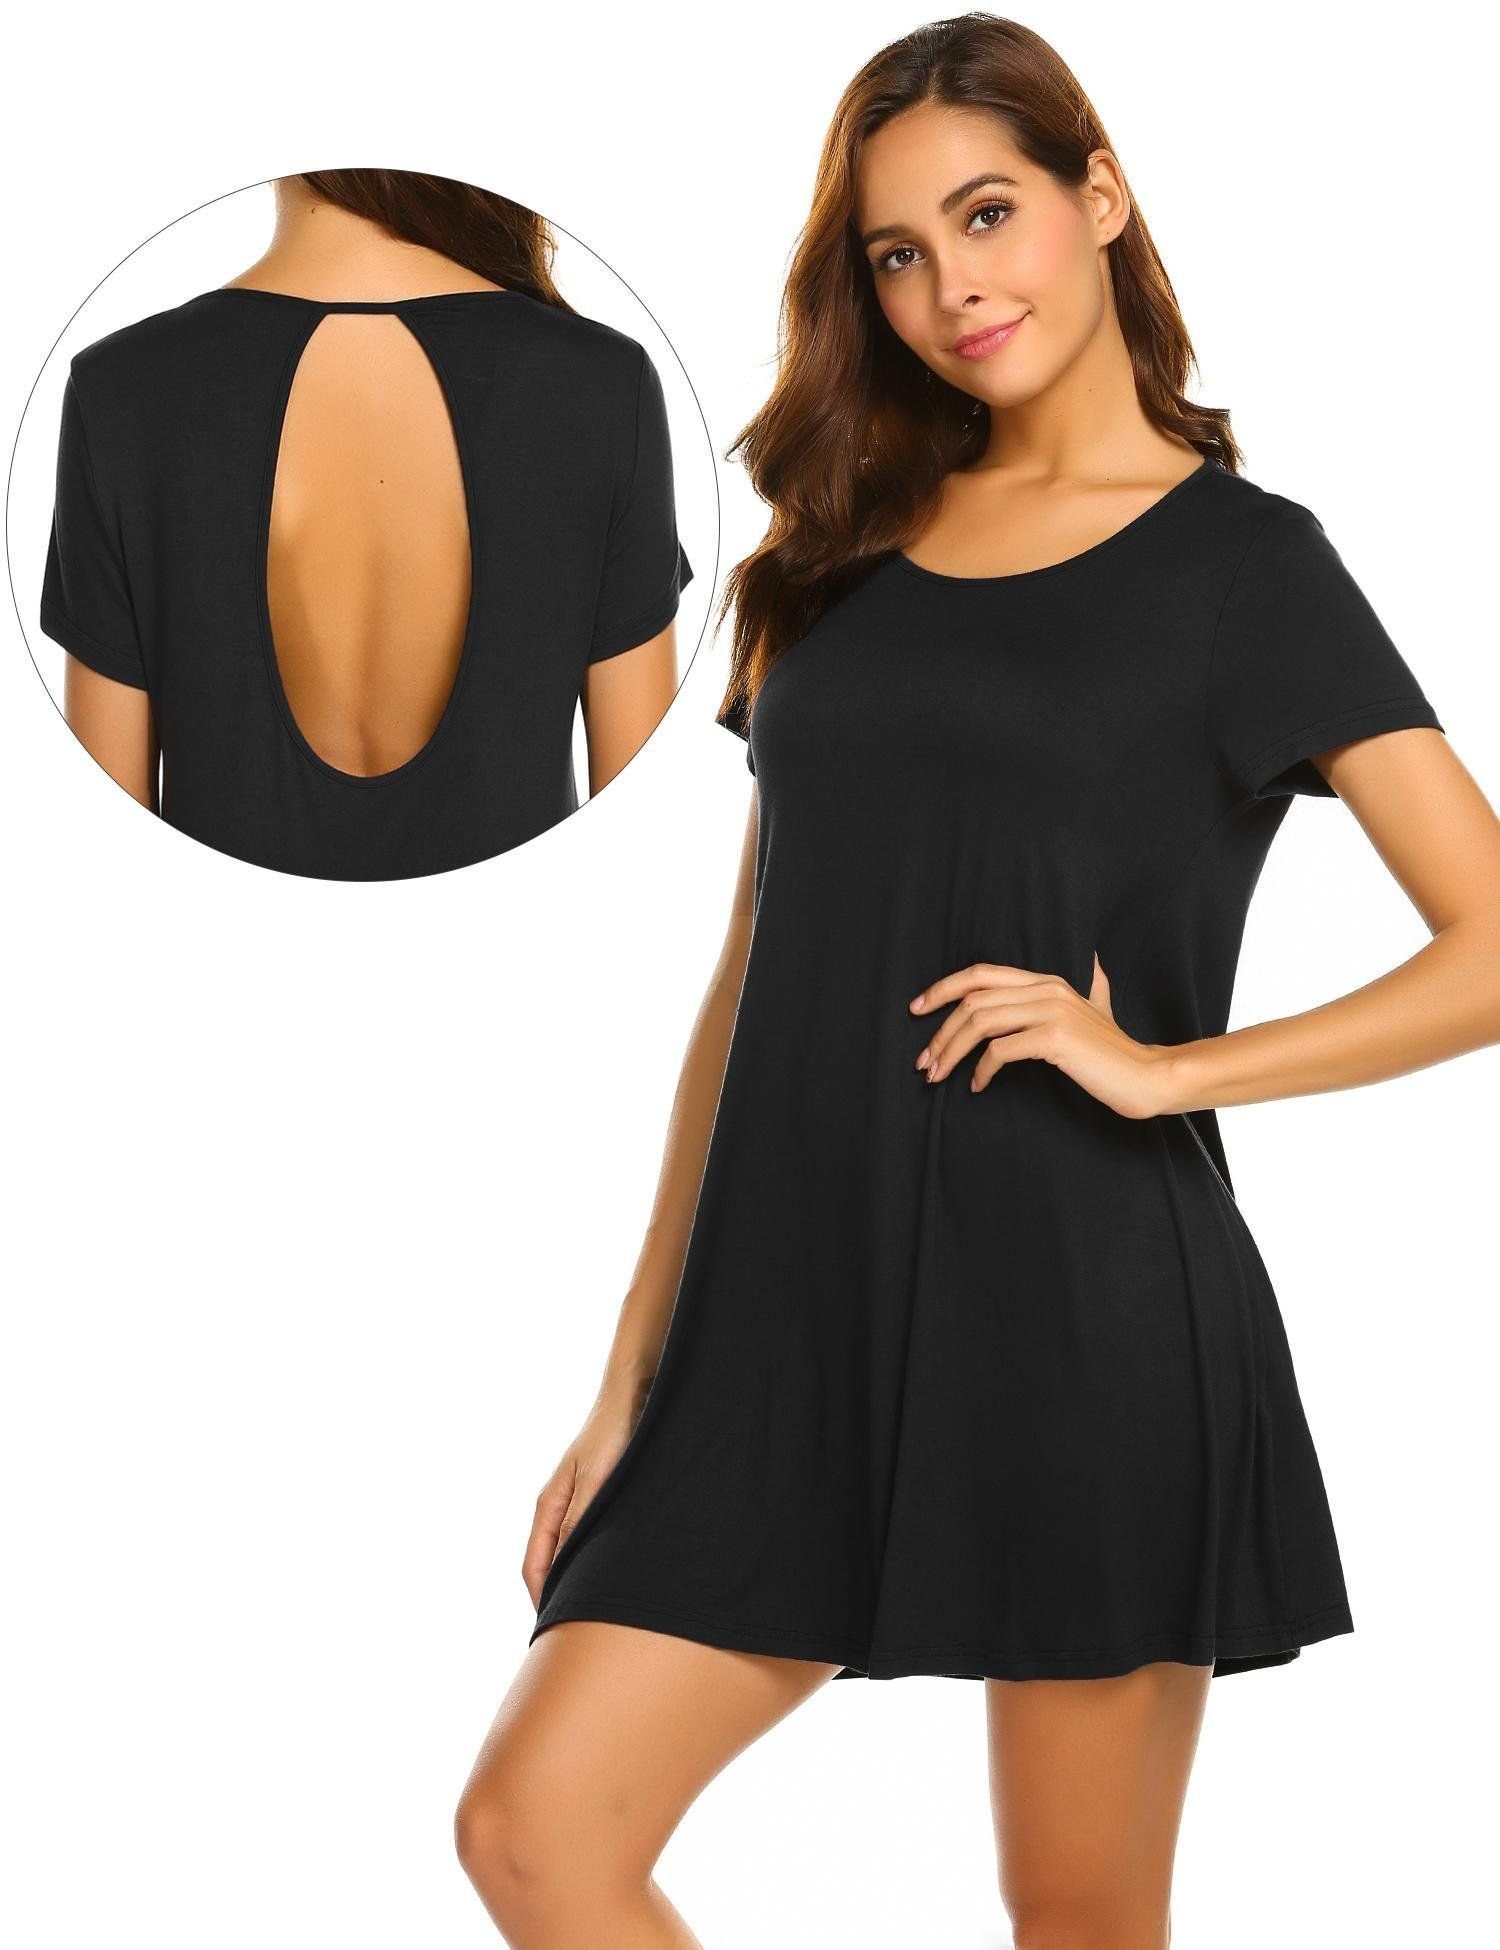 b9ea47c4a9f5 Yayado Women Sexy Backless Plain ALine Dress Crew Neck T Shirt Dress Black  L -- Click image for even more information. (This is an affiliate link).